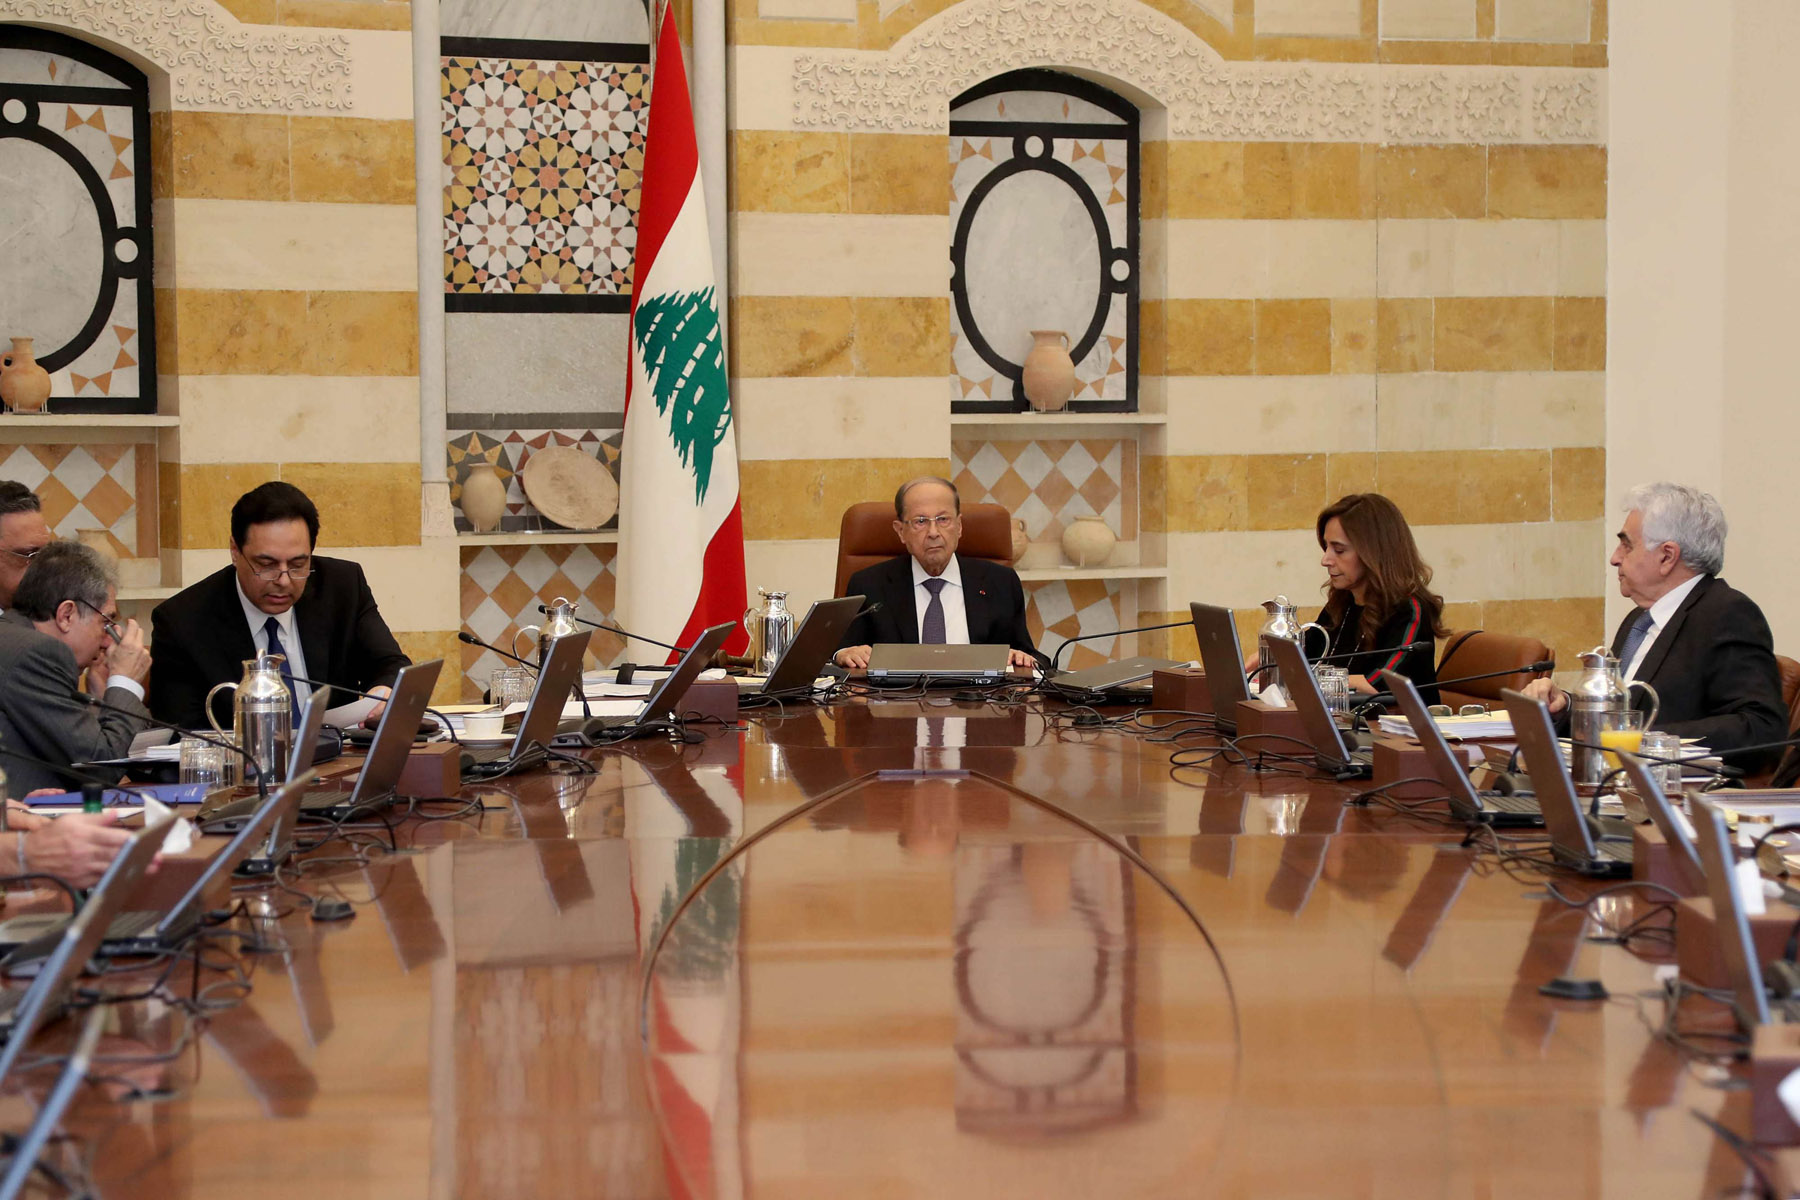 Lebanese President Michel Aoun (C) leads a cabinet meeting at Baabda Palace near Beirut, March 12. (DPA)